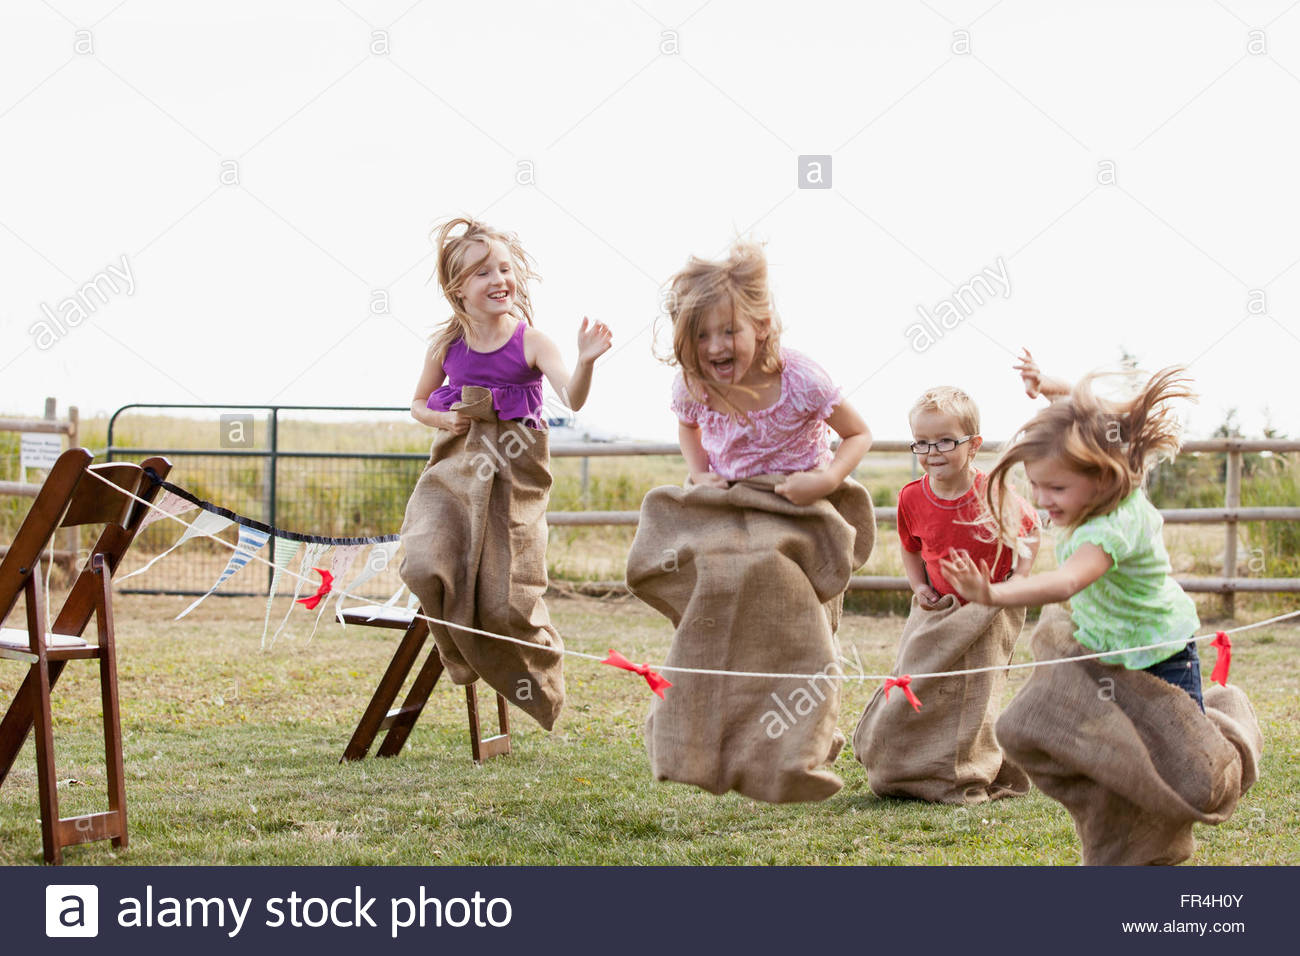 Cousins competing in potato sack race. - Stock Image